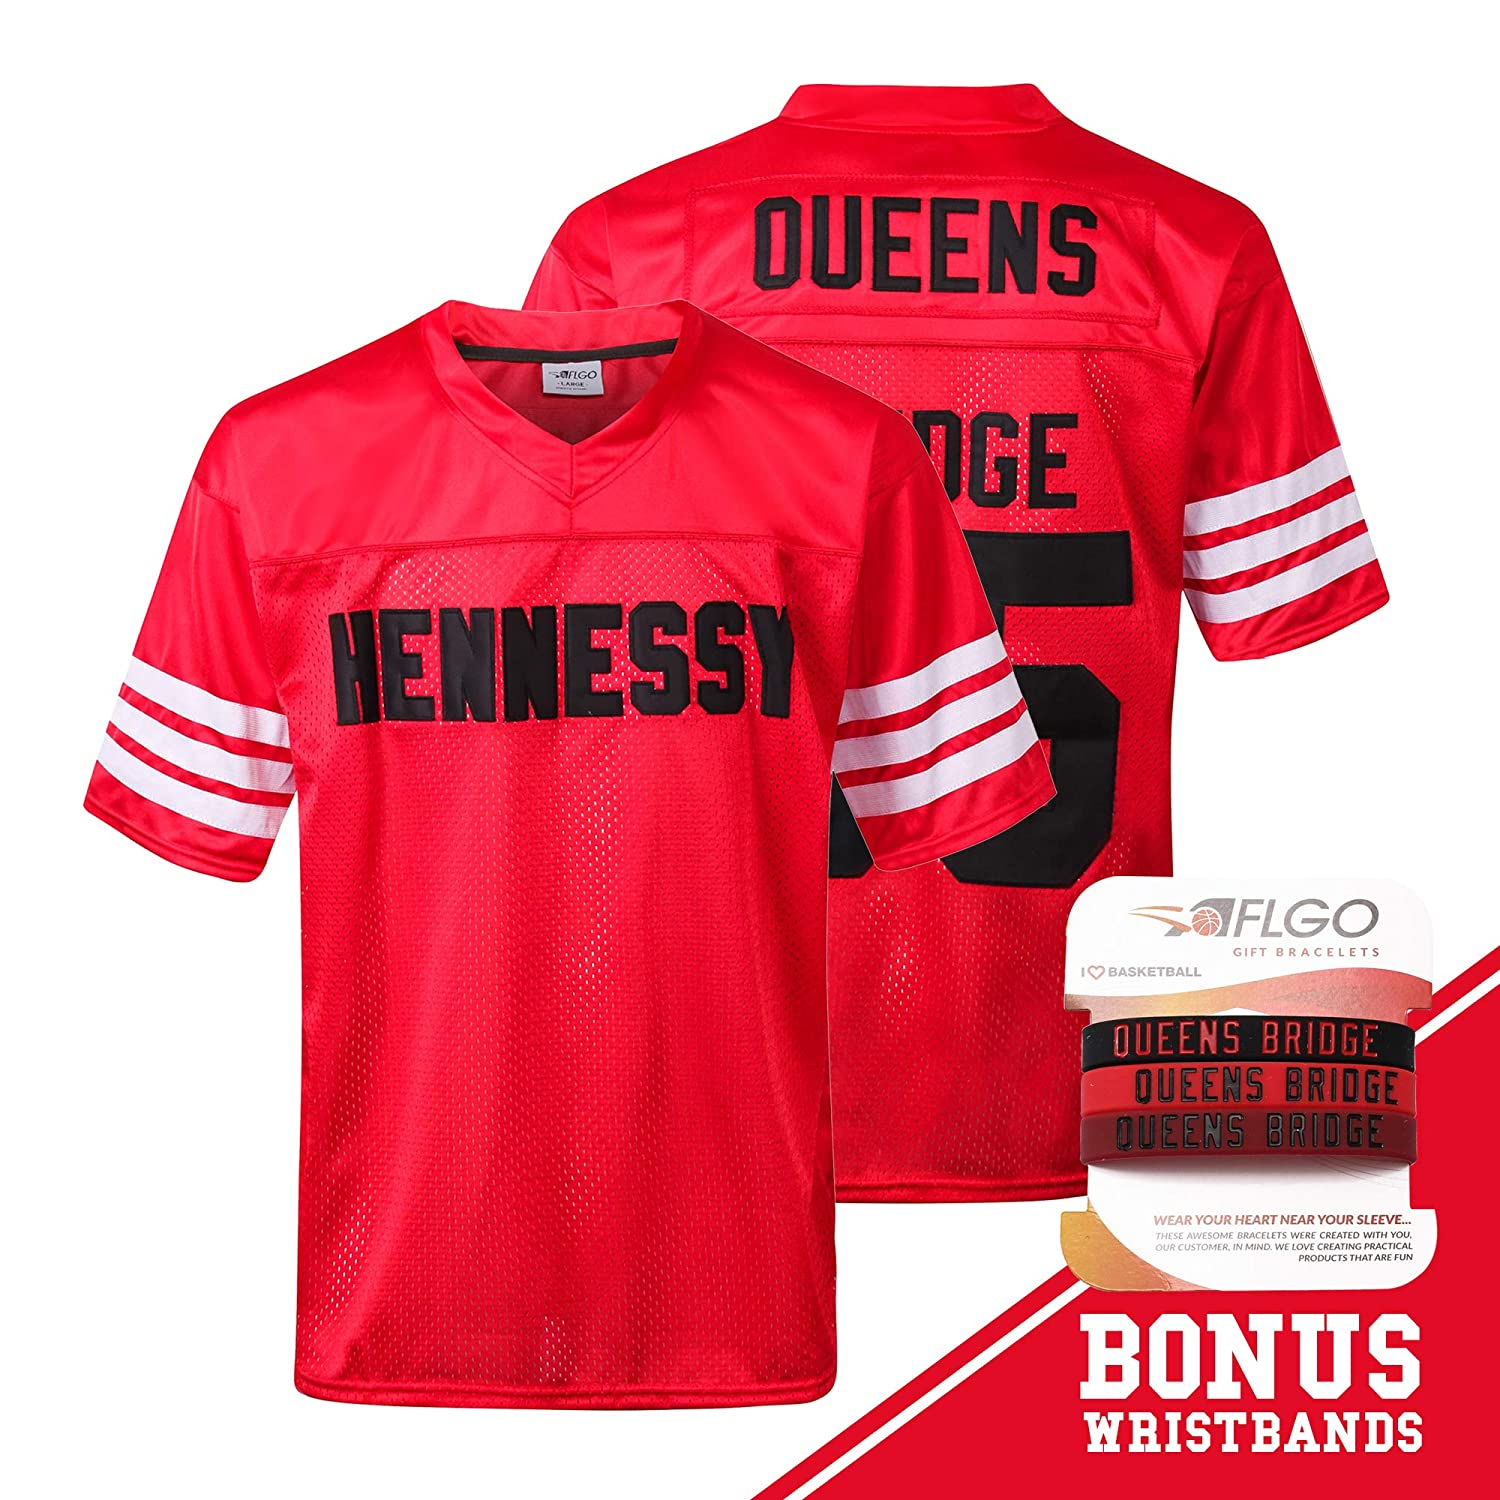 80dae09db Amazon.com : AFLGO Mobb Deep #95 Hennessy Prodigy Queens Bridge Shook Ones  Jersey Stitched Clothing Throwback, Top Bonus Combo Set with Wristbands :  Sports ...